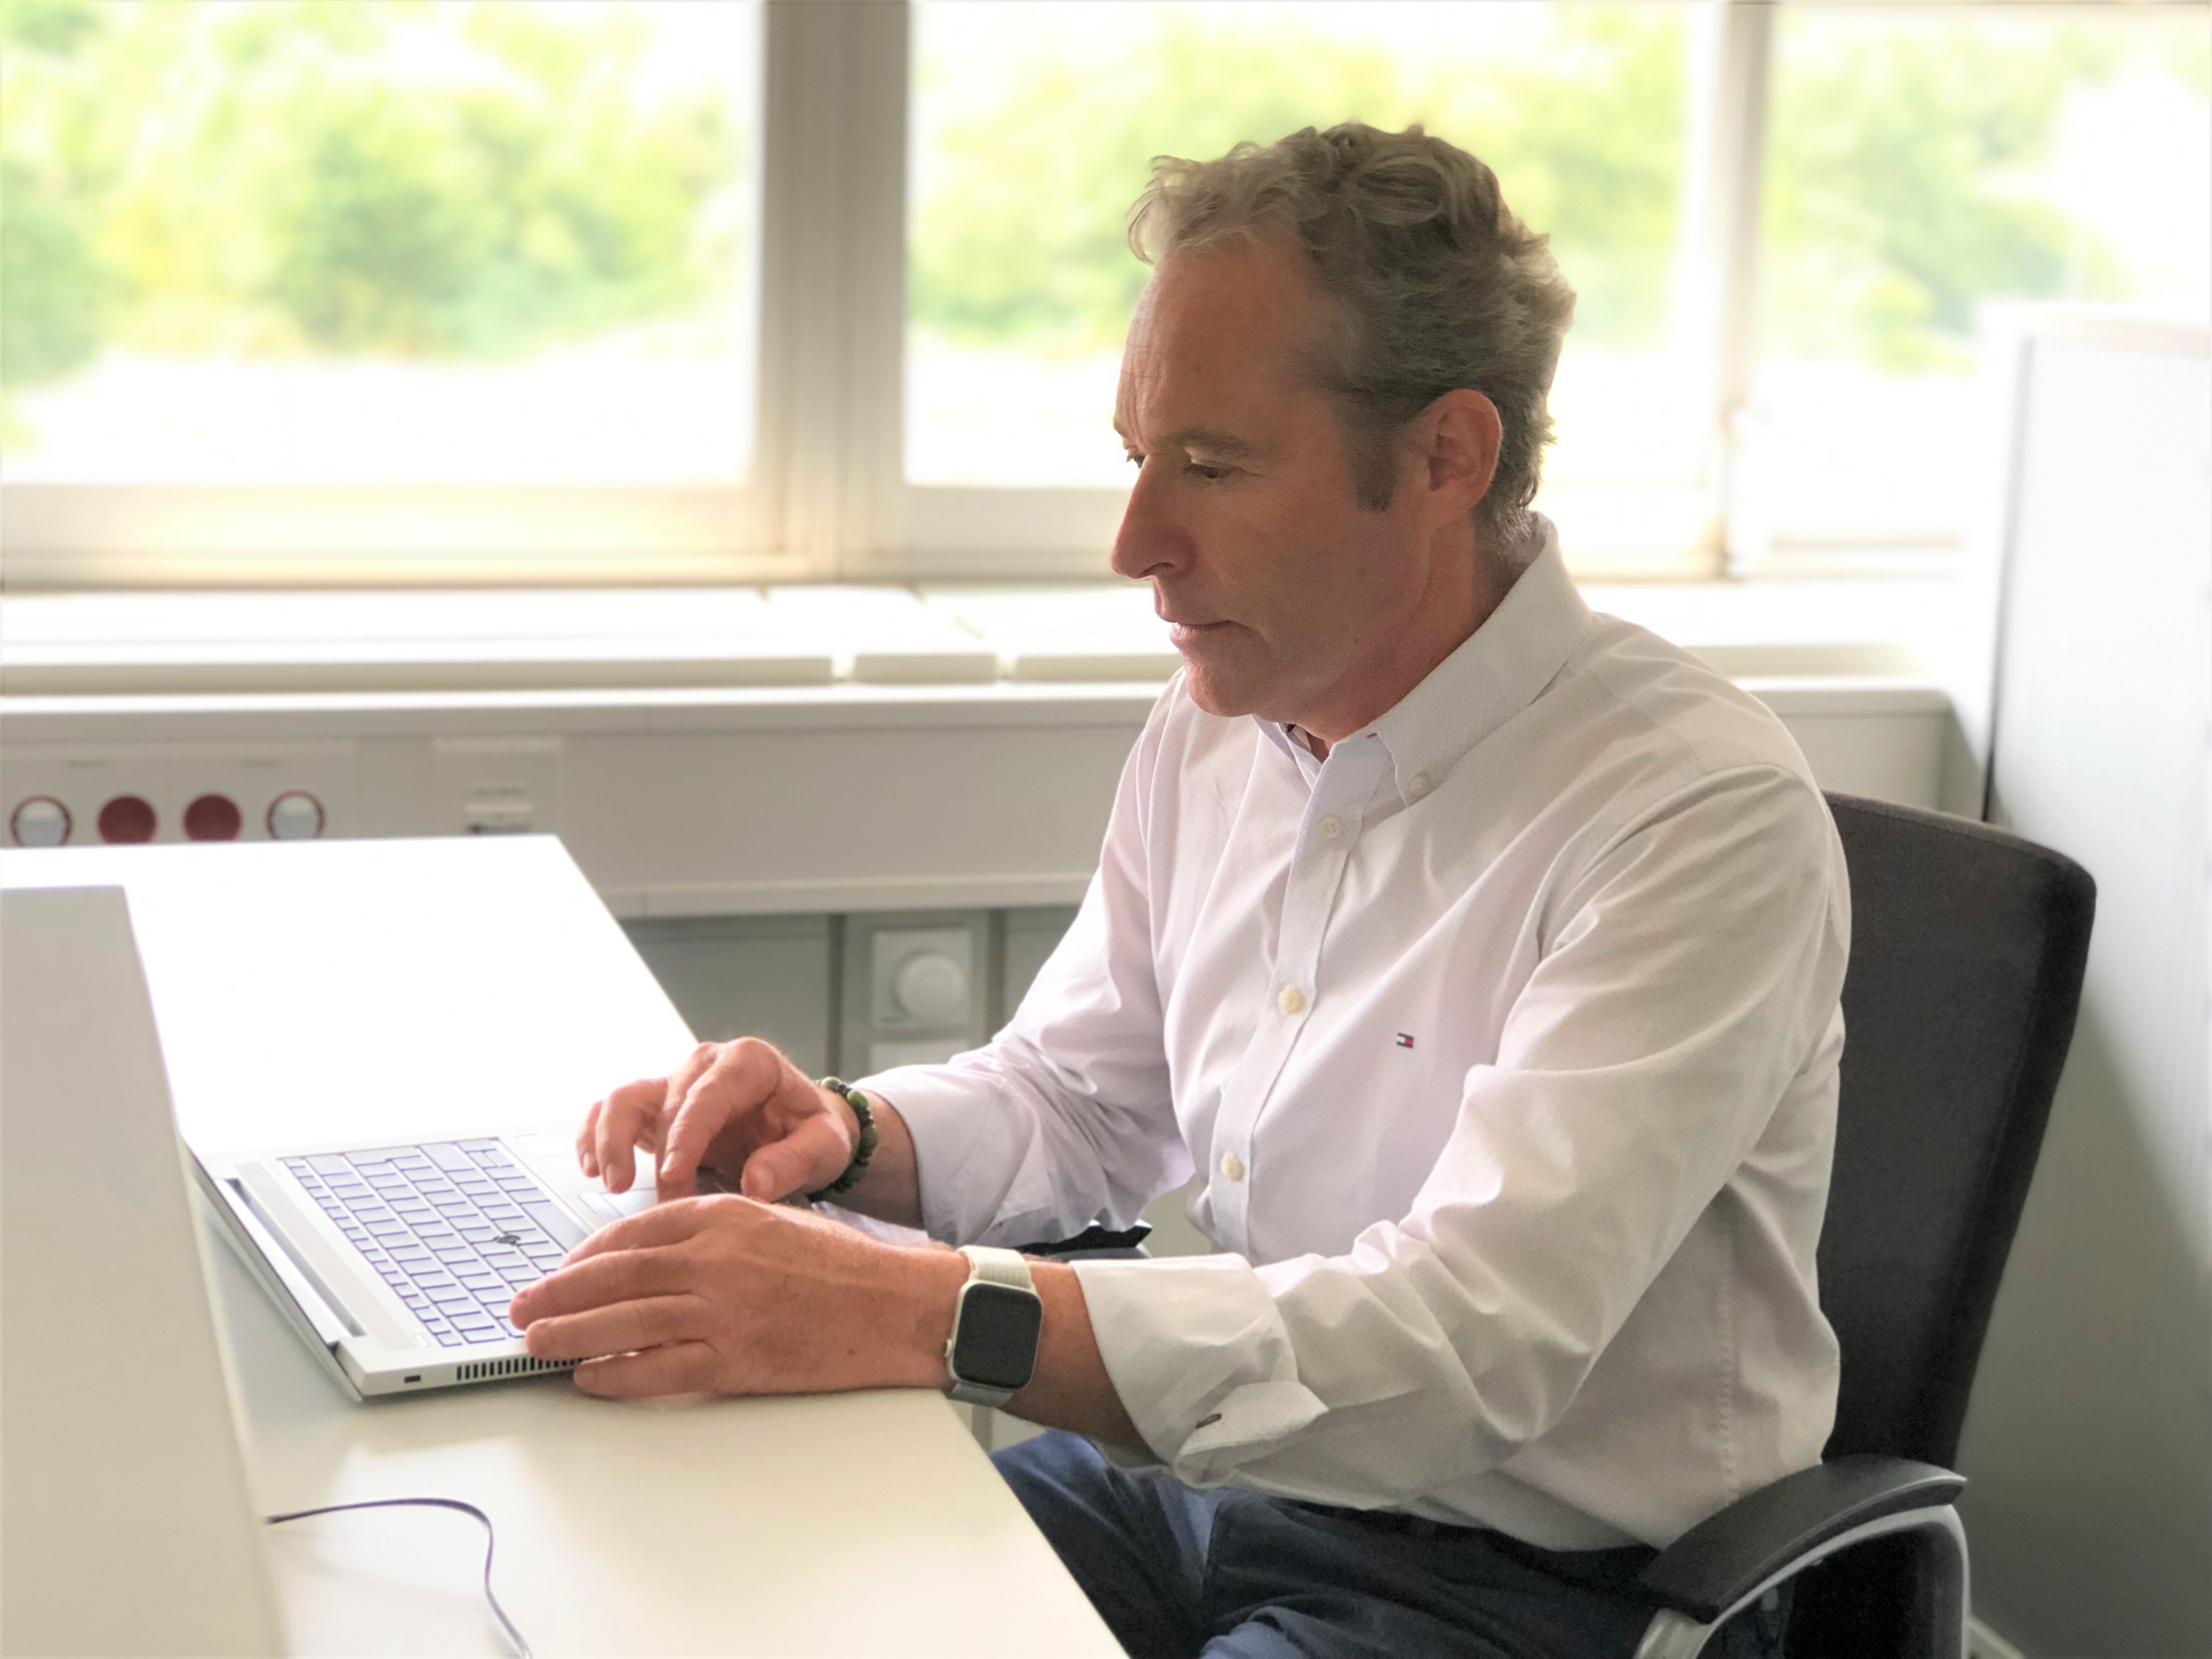 As Director of Global Product Management for E-Mobility, mobile work at various company sites is part of Jean-Luc Kirmann's everyday life.